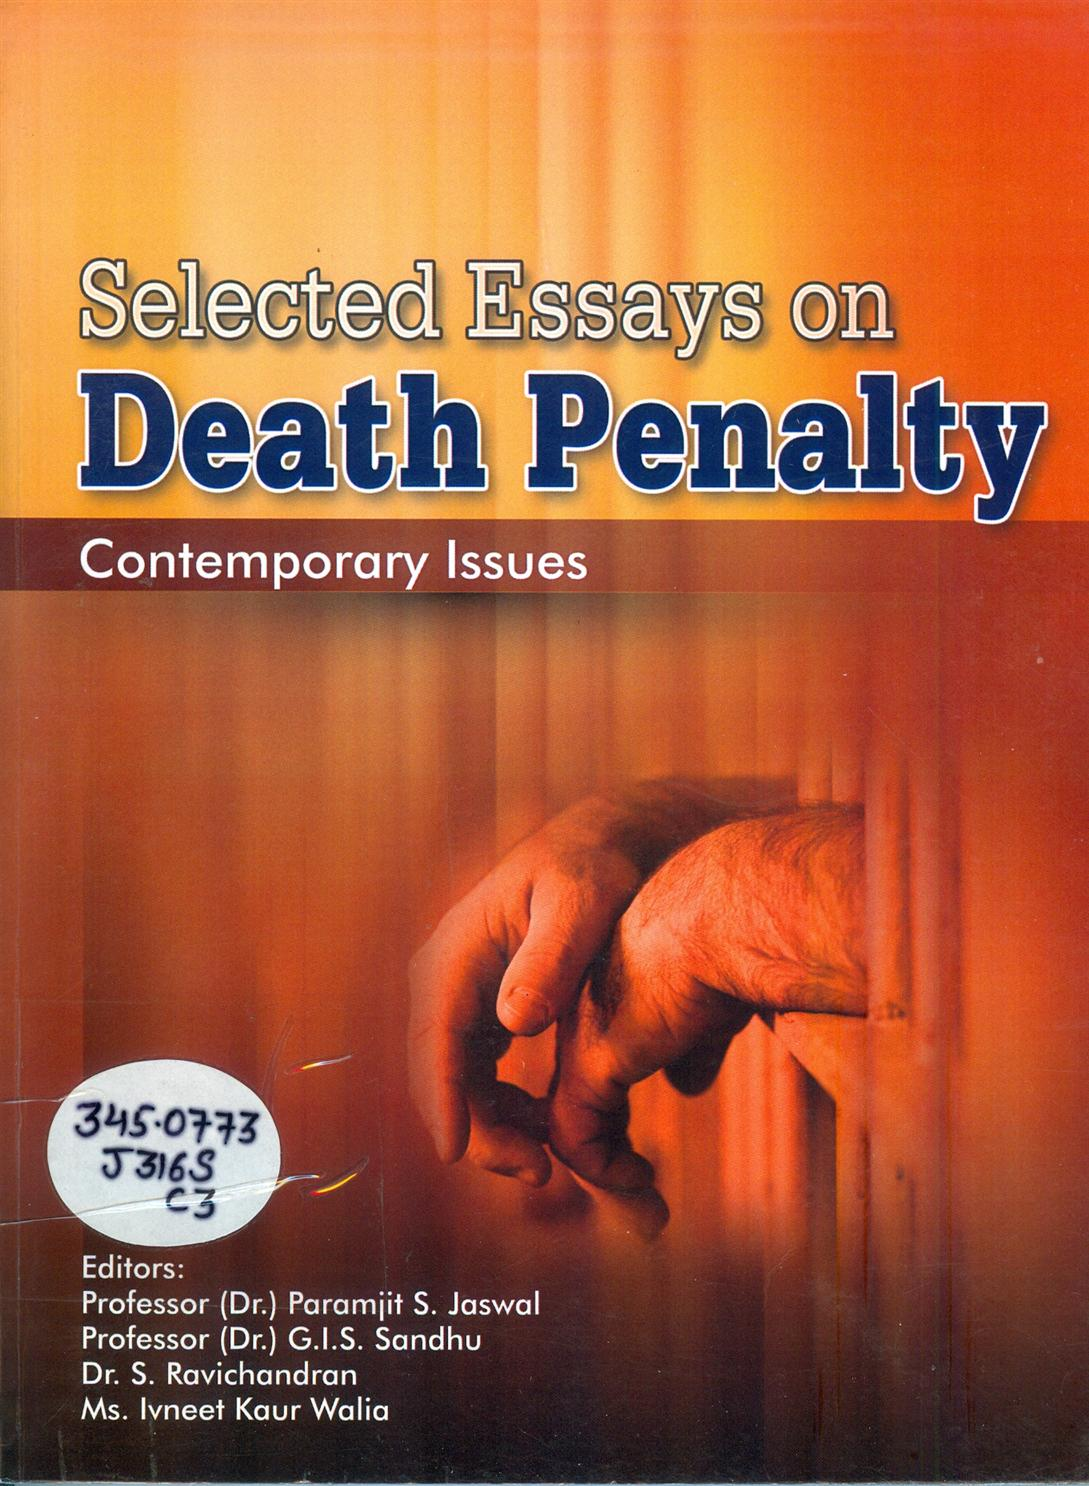 welcome to rajiv gandhi national university of law punjab selected essay on death penalty contemporary issues author edited book prof dr paramjit s jaswal prof dr g i s sandhu and ms ivneet walia